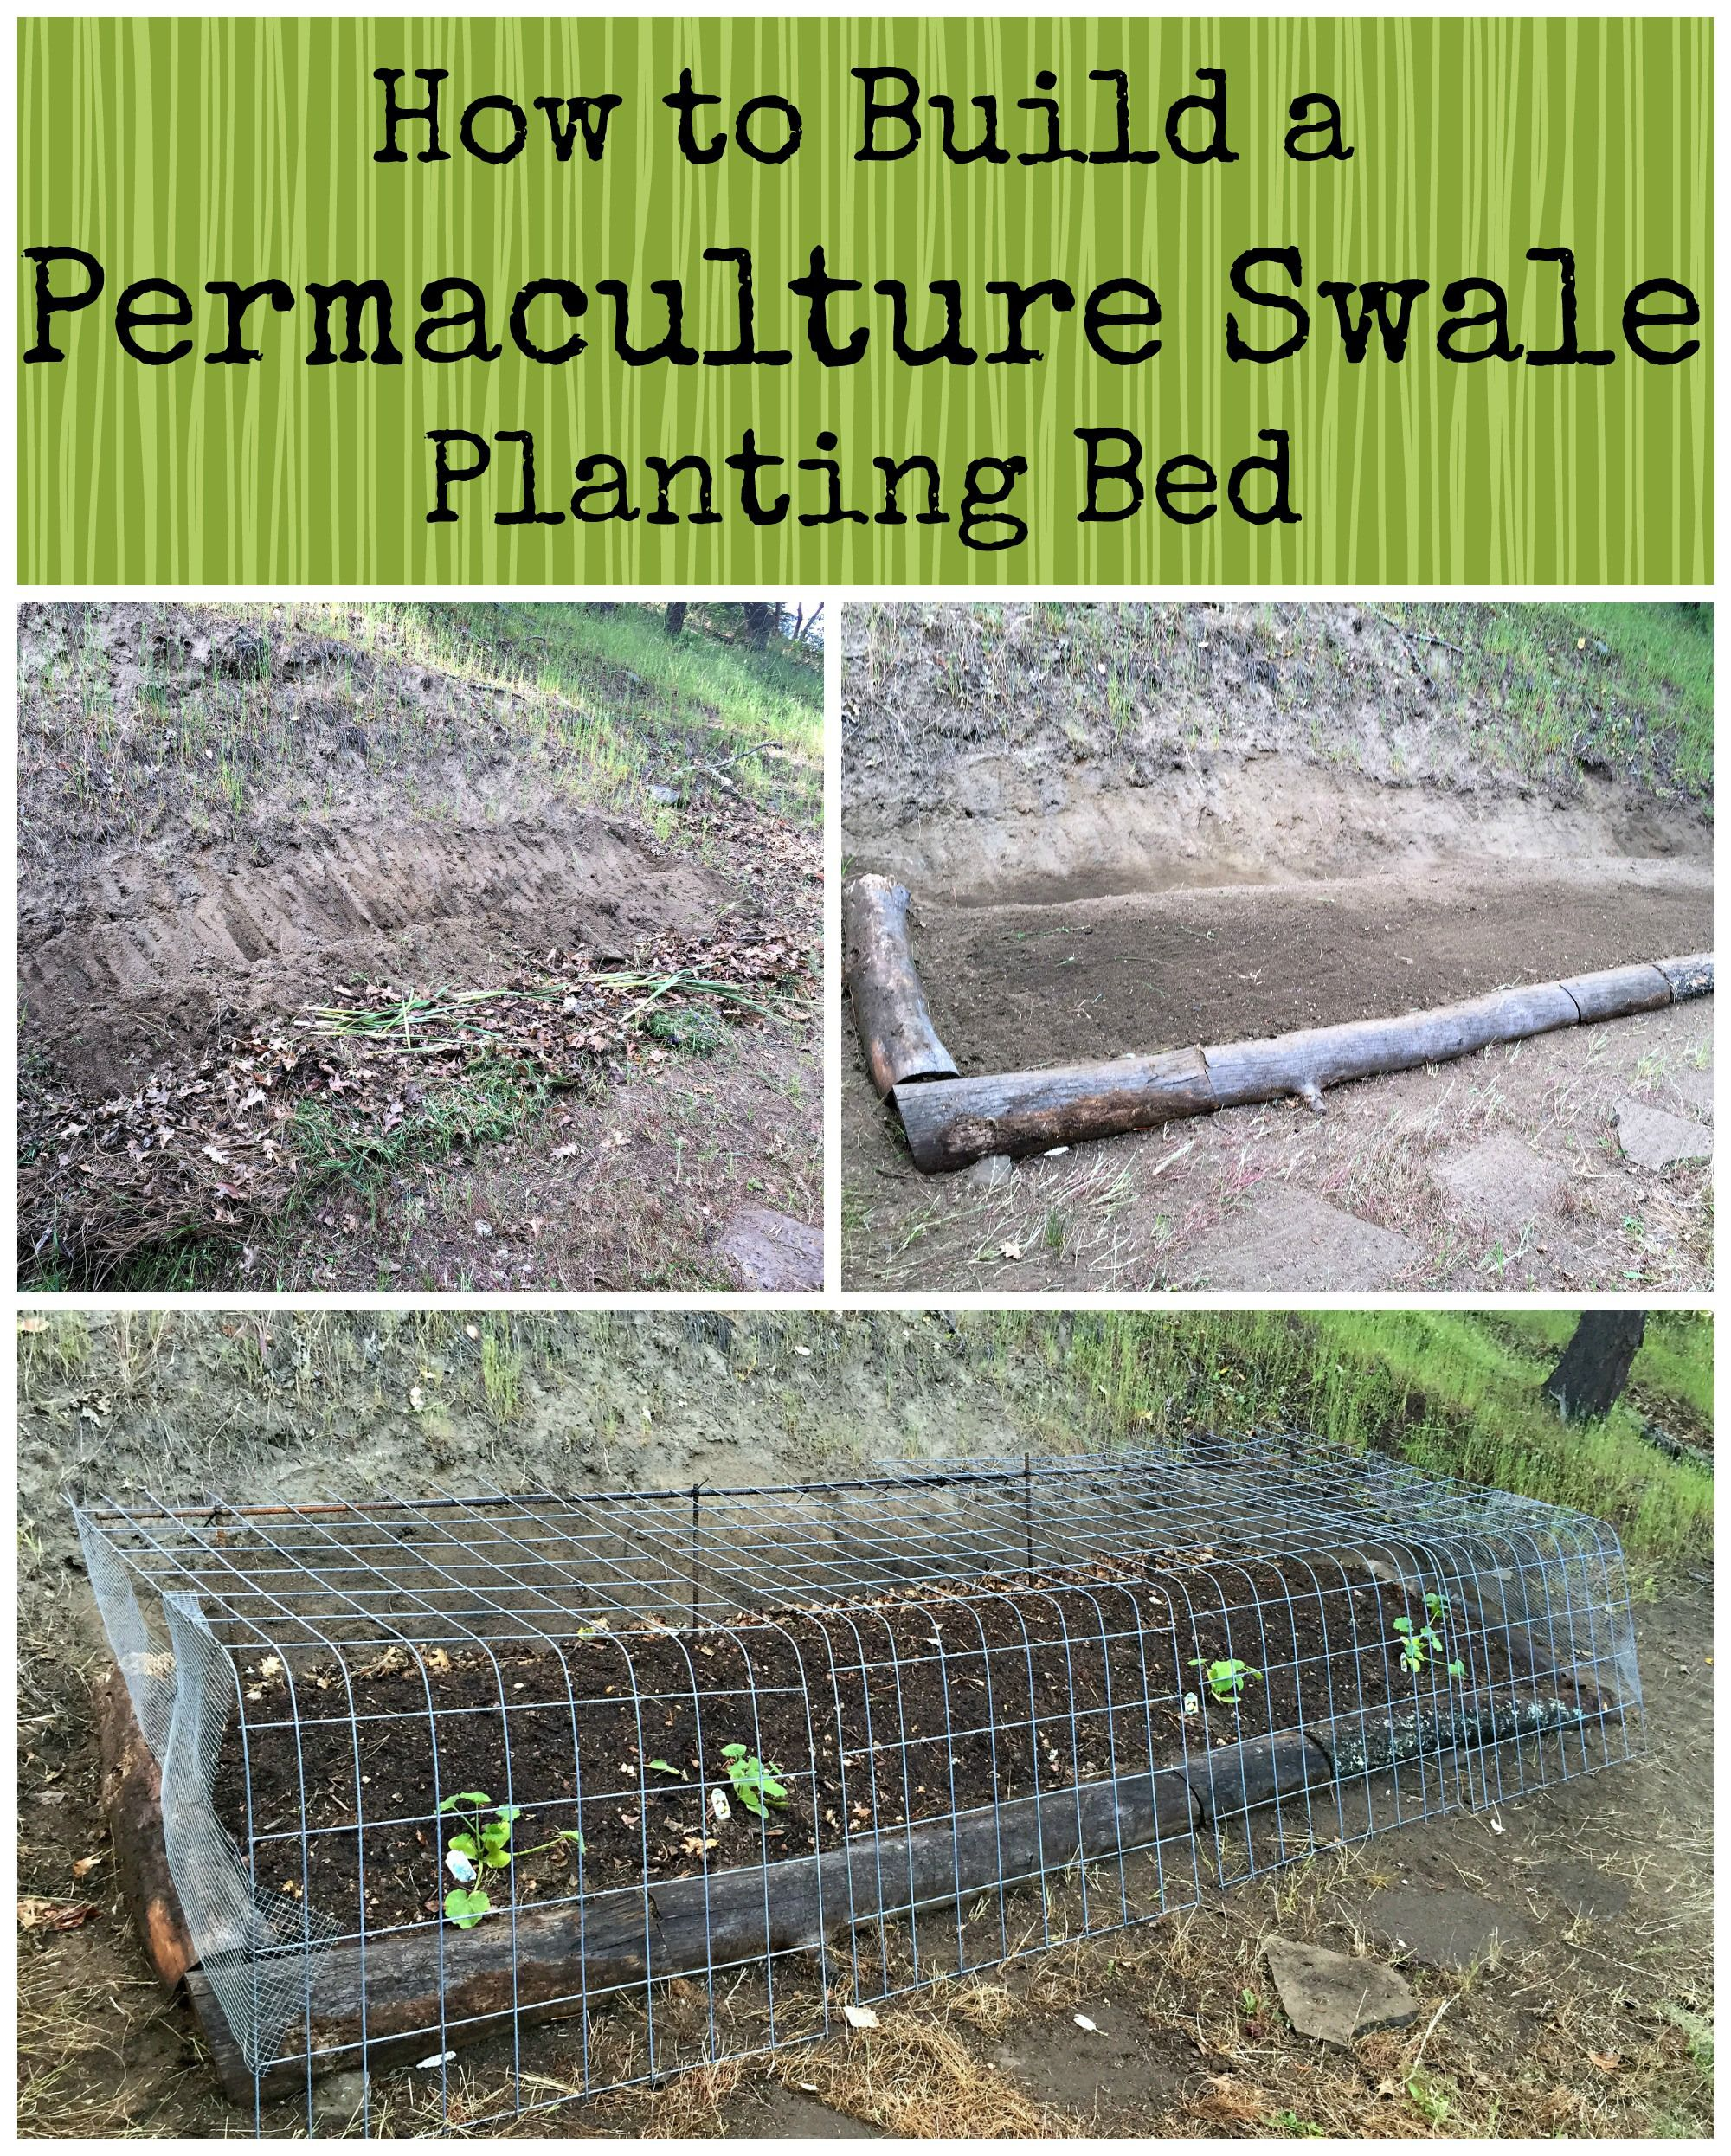 Questions about the recycled plastic raised garden bed 3 x 6 x 11 quot - How To Build A Permaculture Swale Planting Bed